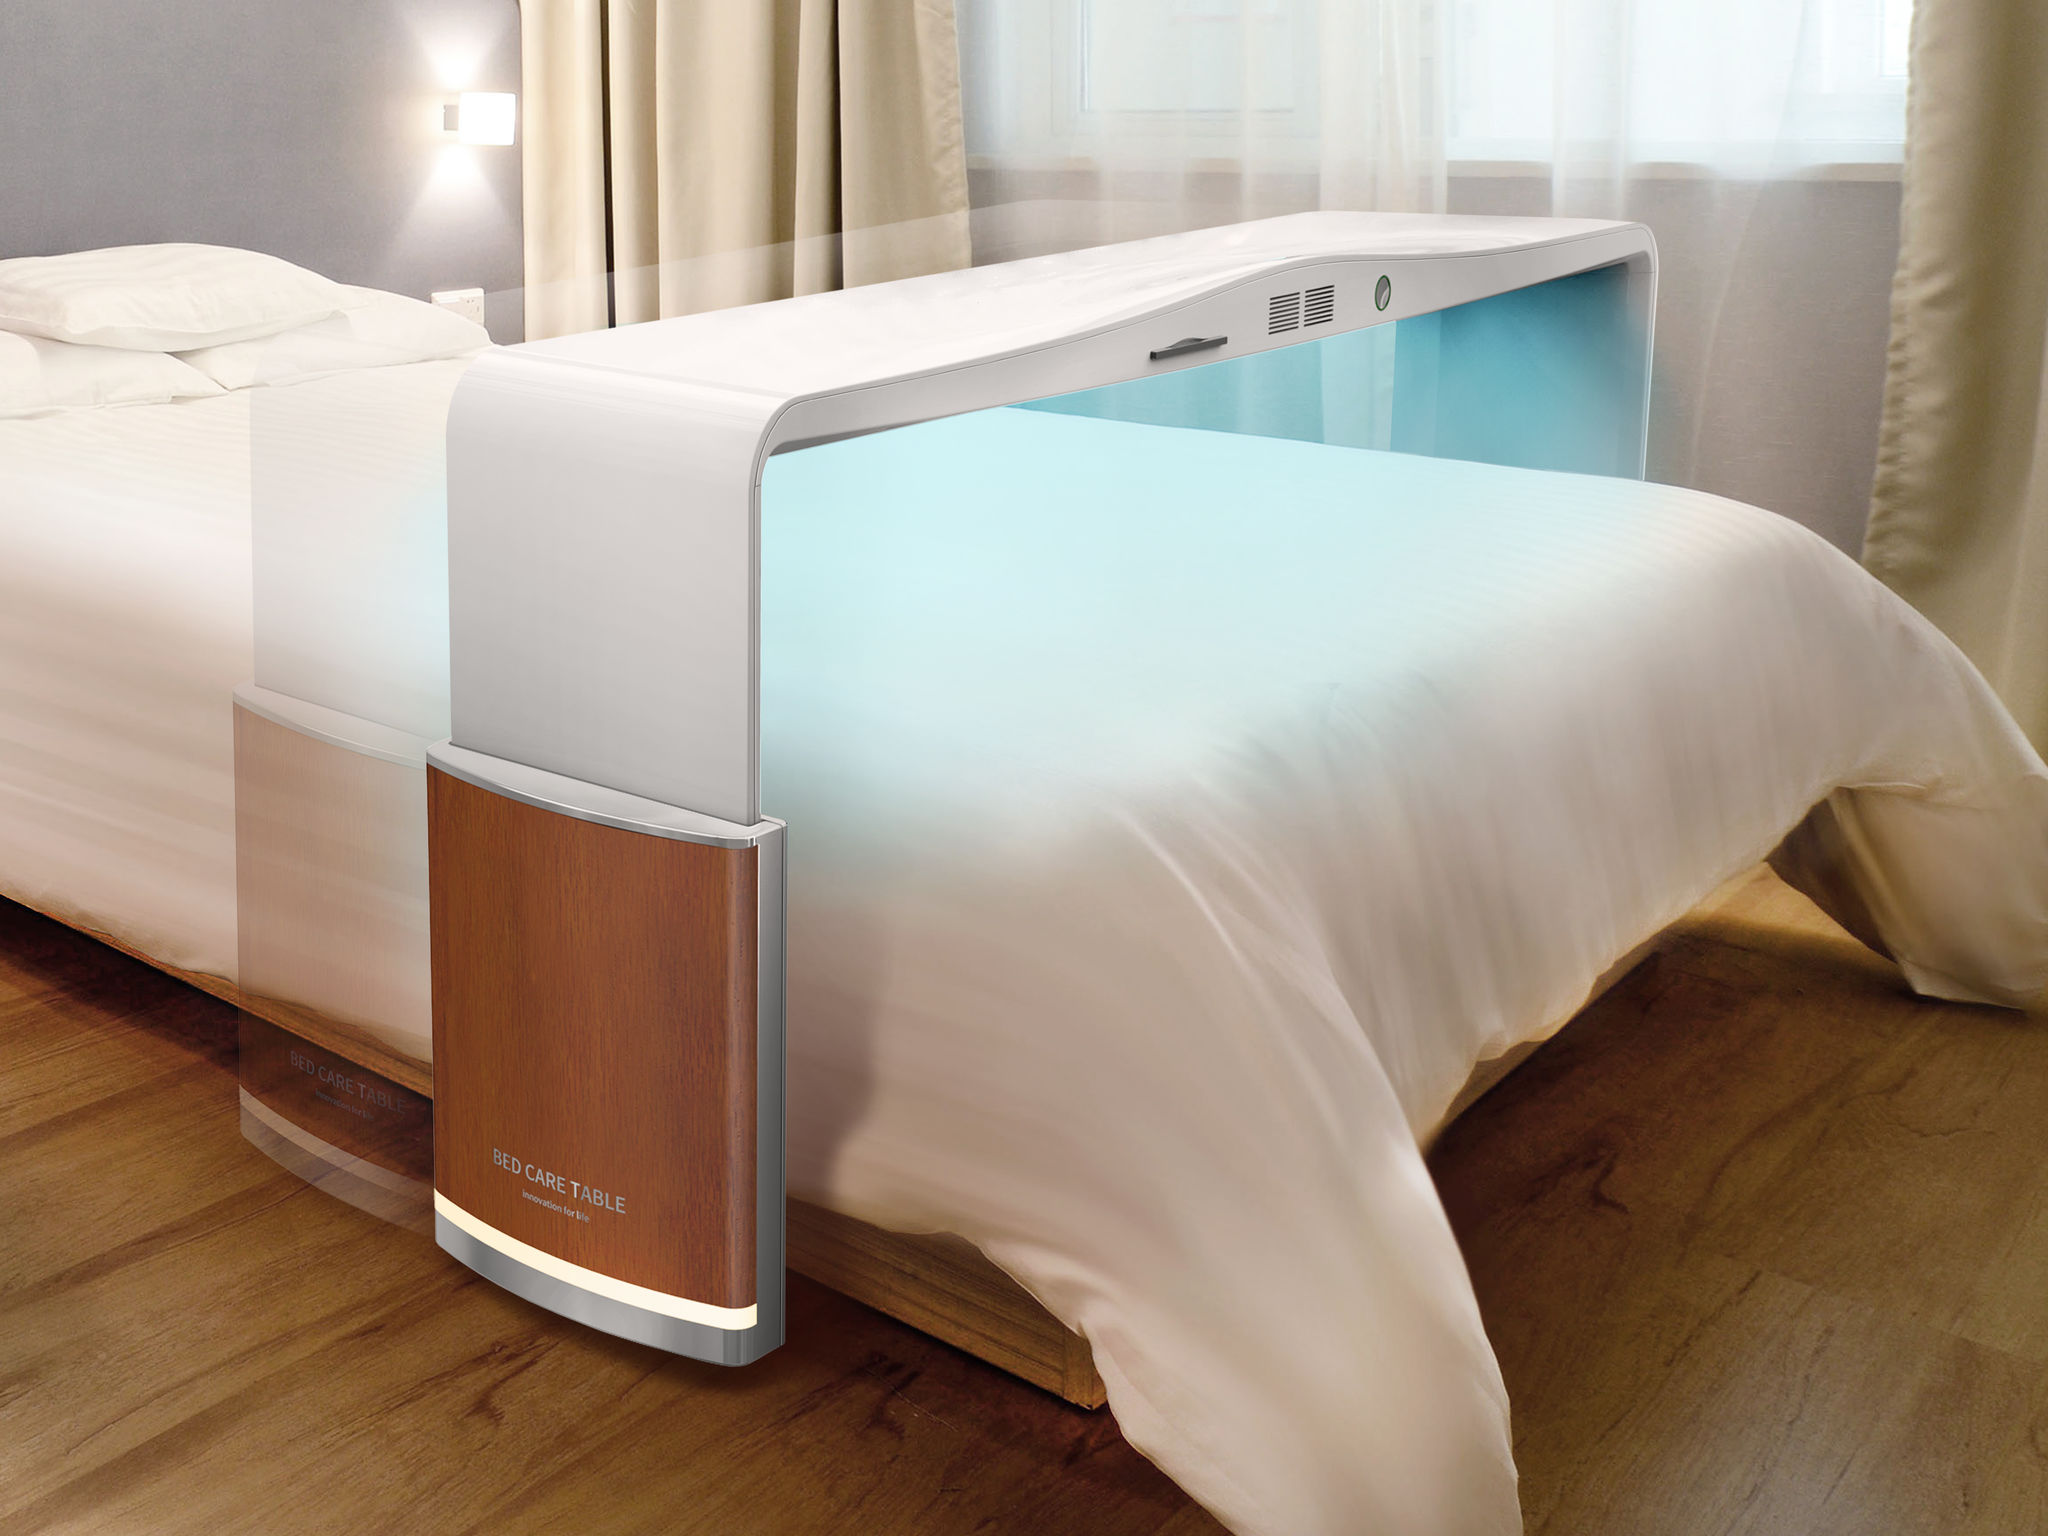 Bed Care Table If World Design Guide